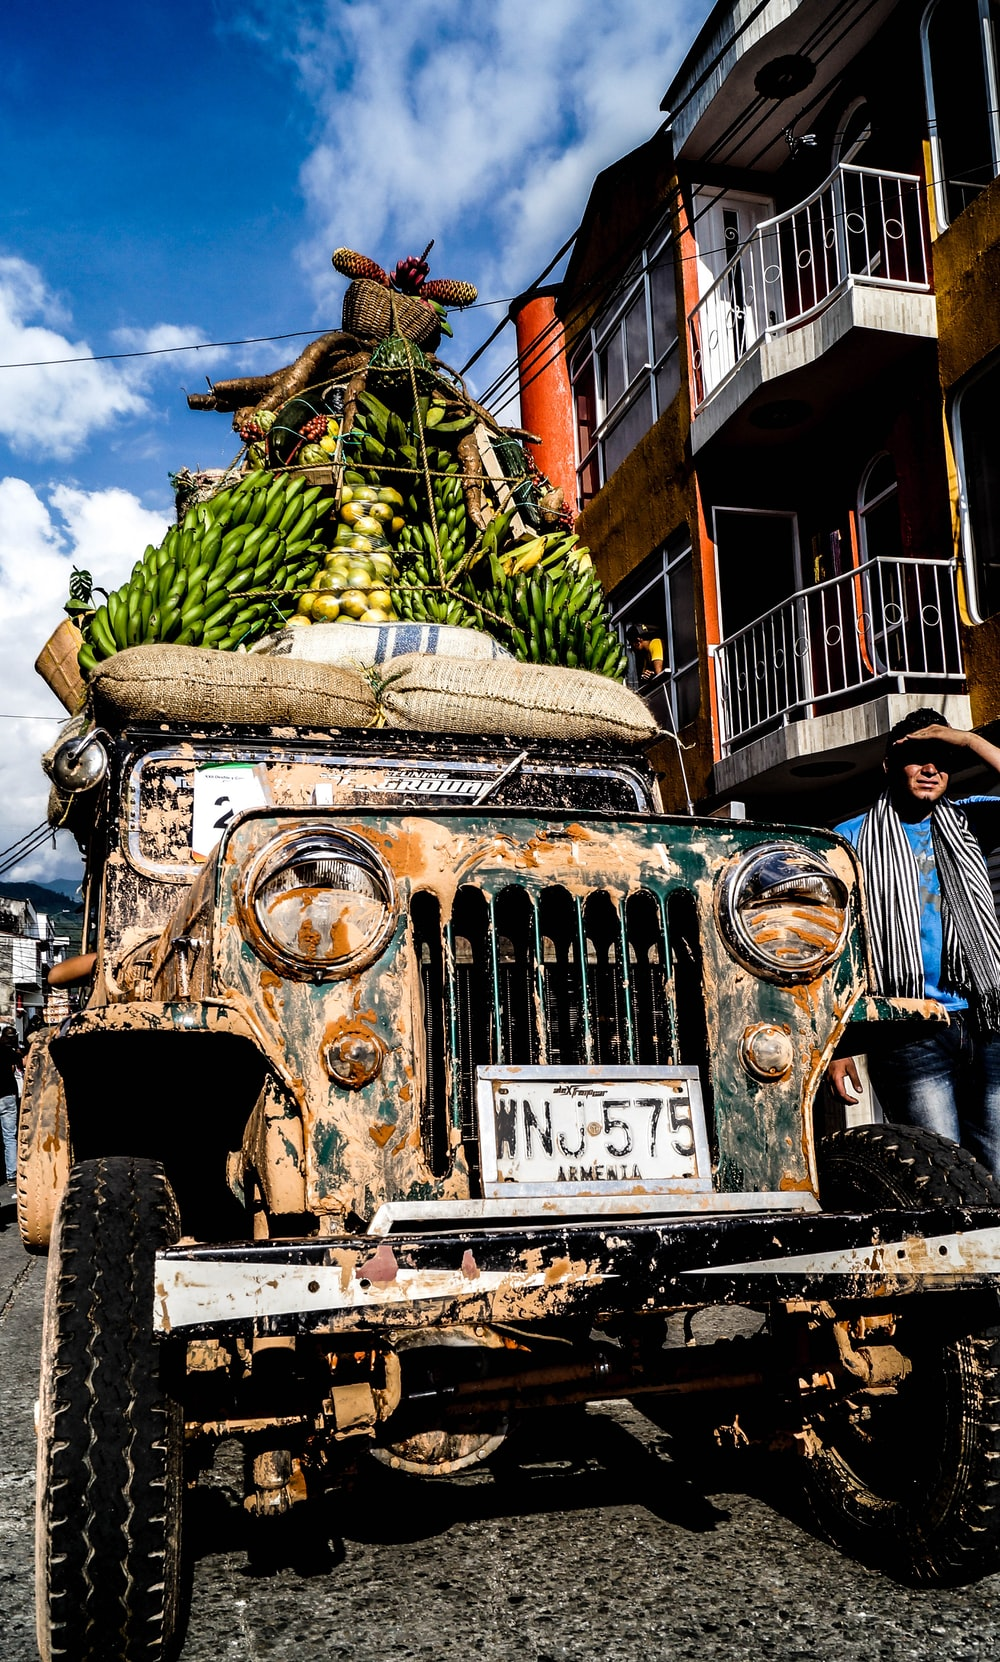 green bananas on vehicle roof